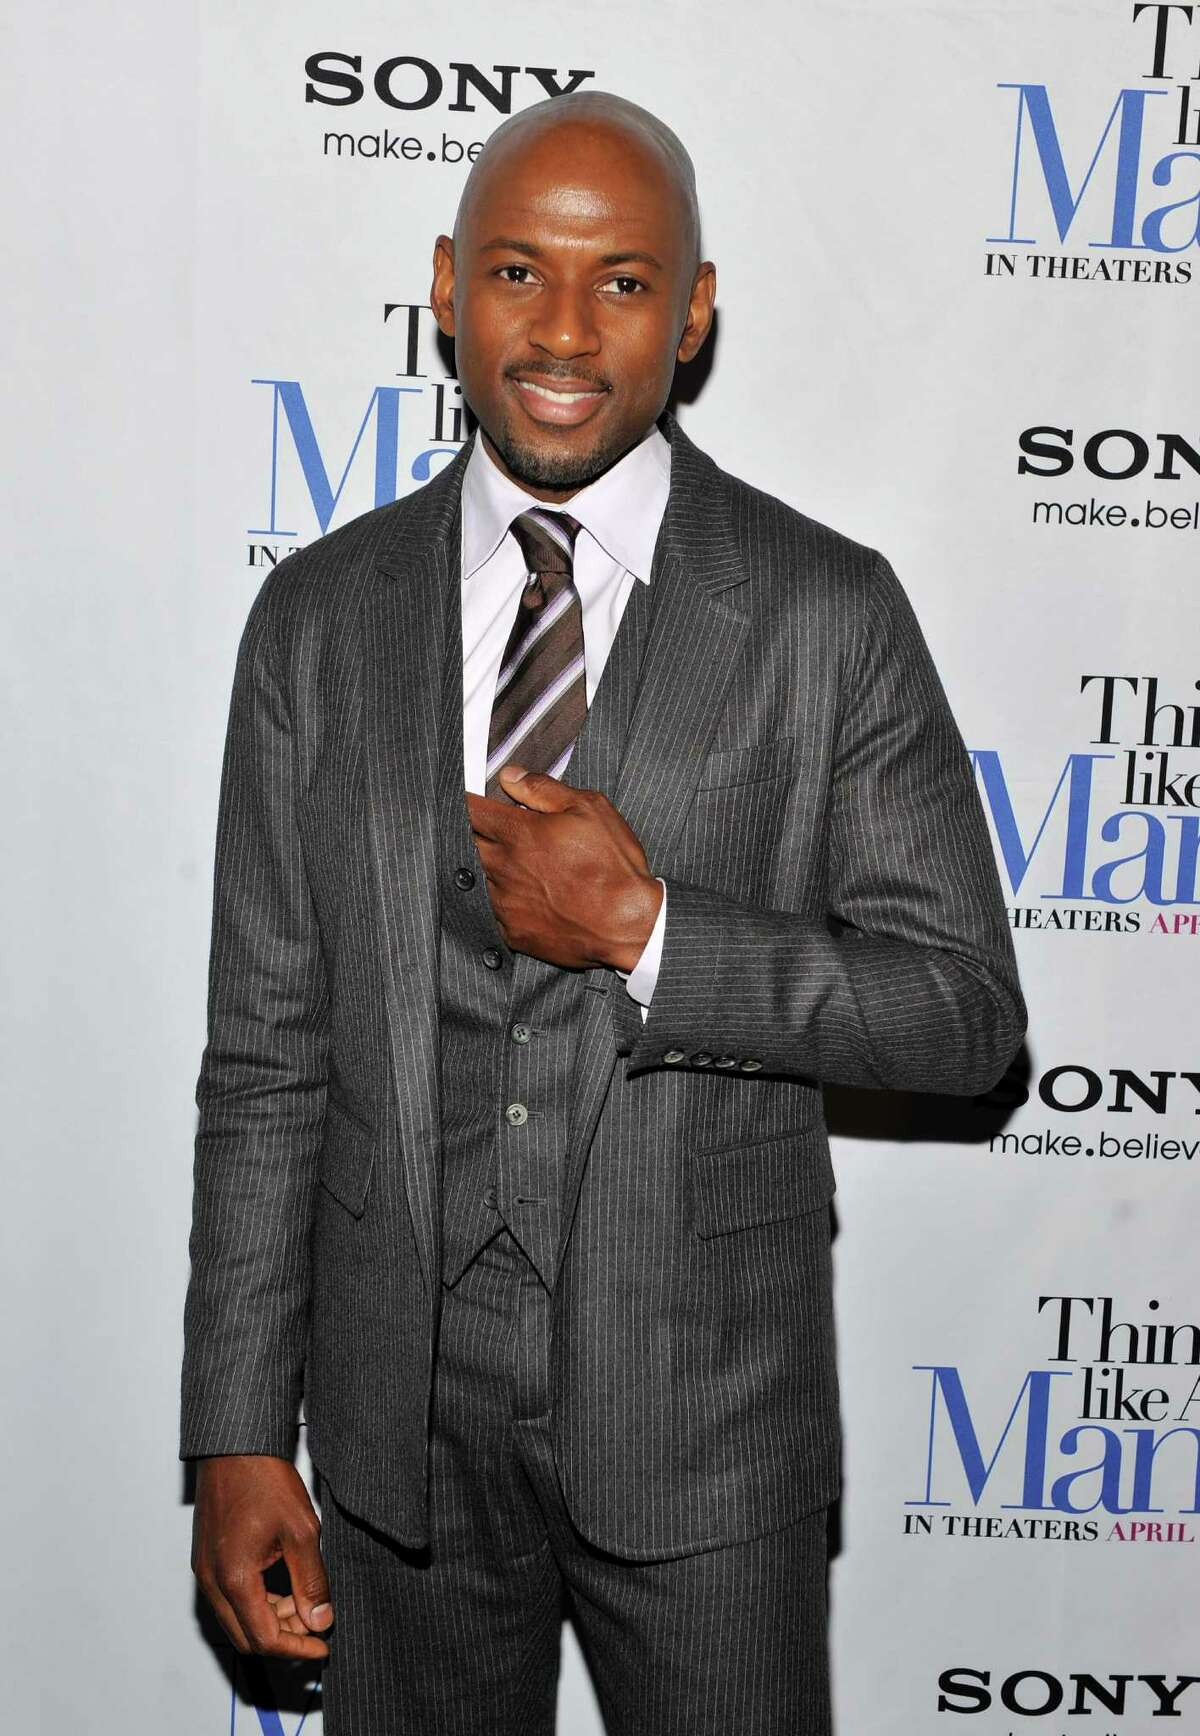 """NEW YORK, NY - APRIL 04: Romany Malco attends the """"Think Like a Man"""" screening at the AMC Empire 25 theater on April 4, 2012 in New York City. (Photo by Fernando Leon/Getty Images)"""